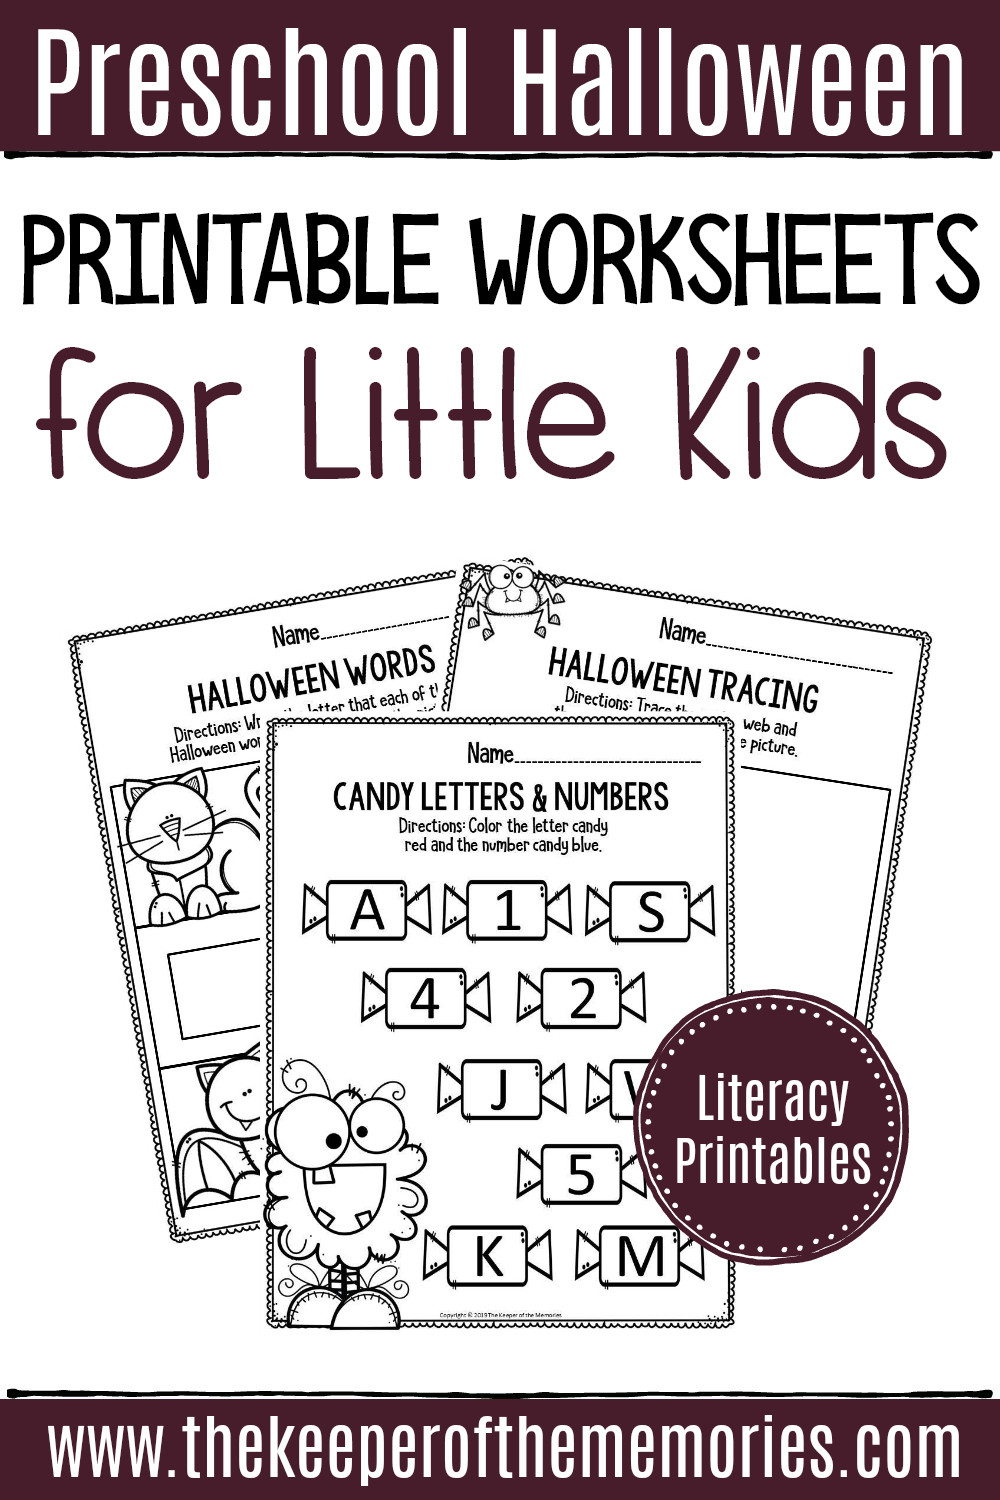 Preschool Halloween Worksheets Free Printable Literacy Halloween Preschool Worksheets